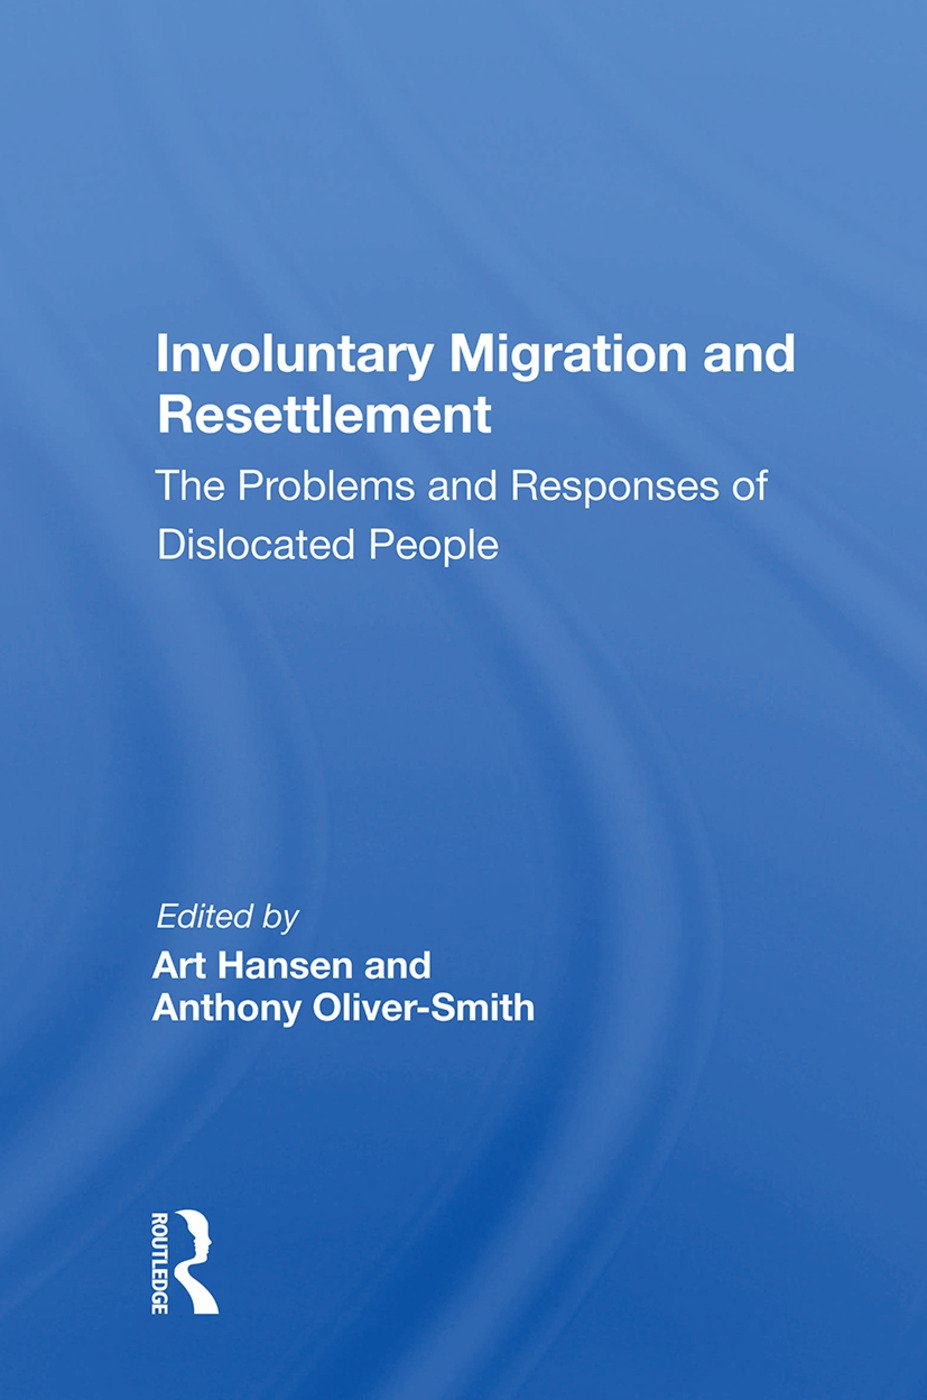 Involuntary Migration and Resettlement: The Problems and Responses of Dislocated People book cover